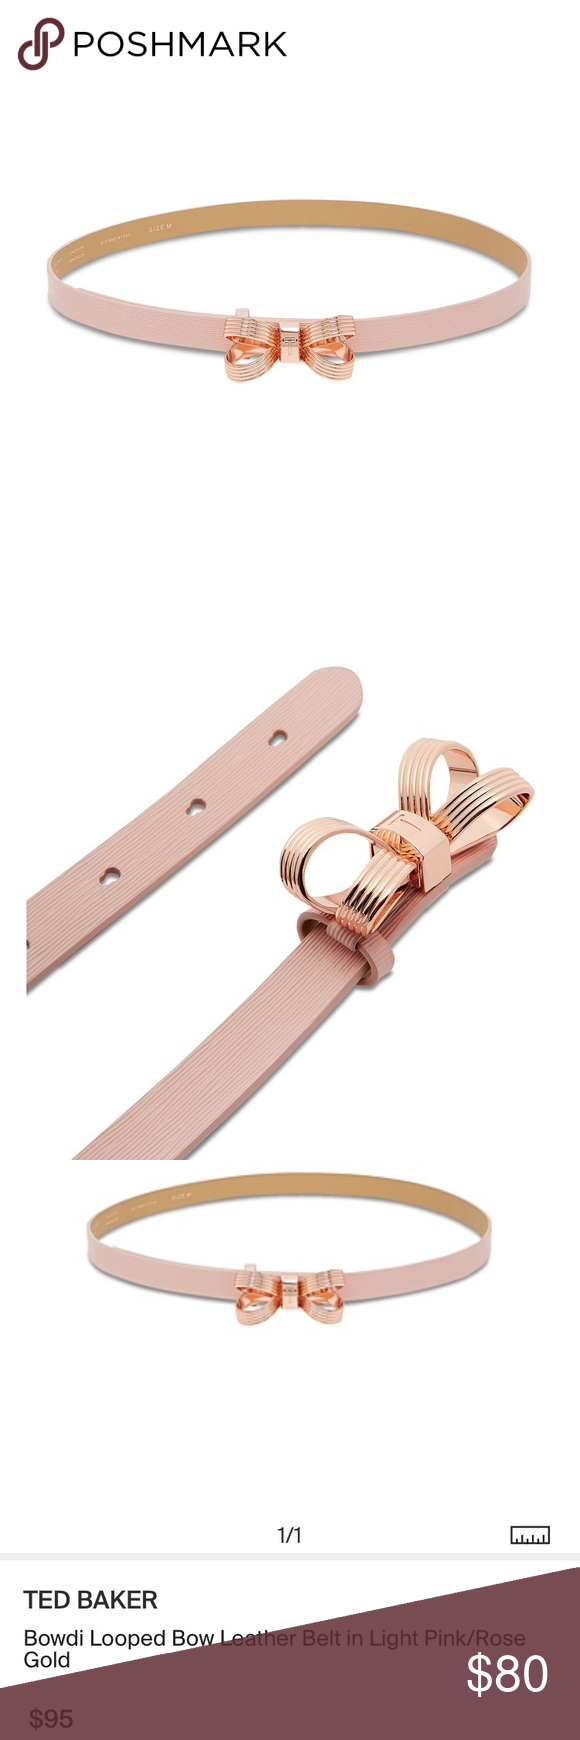 143739c65 Ted Baker Rose Gold Pink Bowdi Bow Belt Leather 🎀 how cute is this belt by